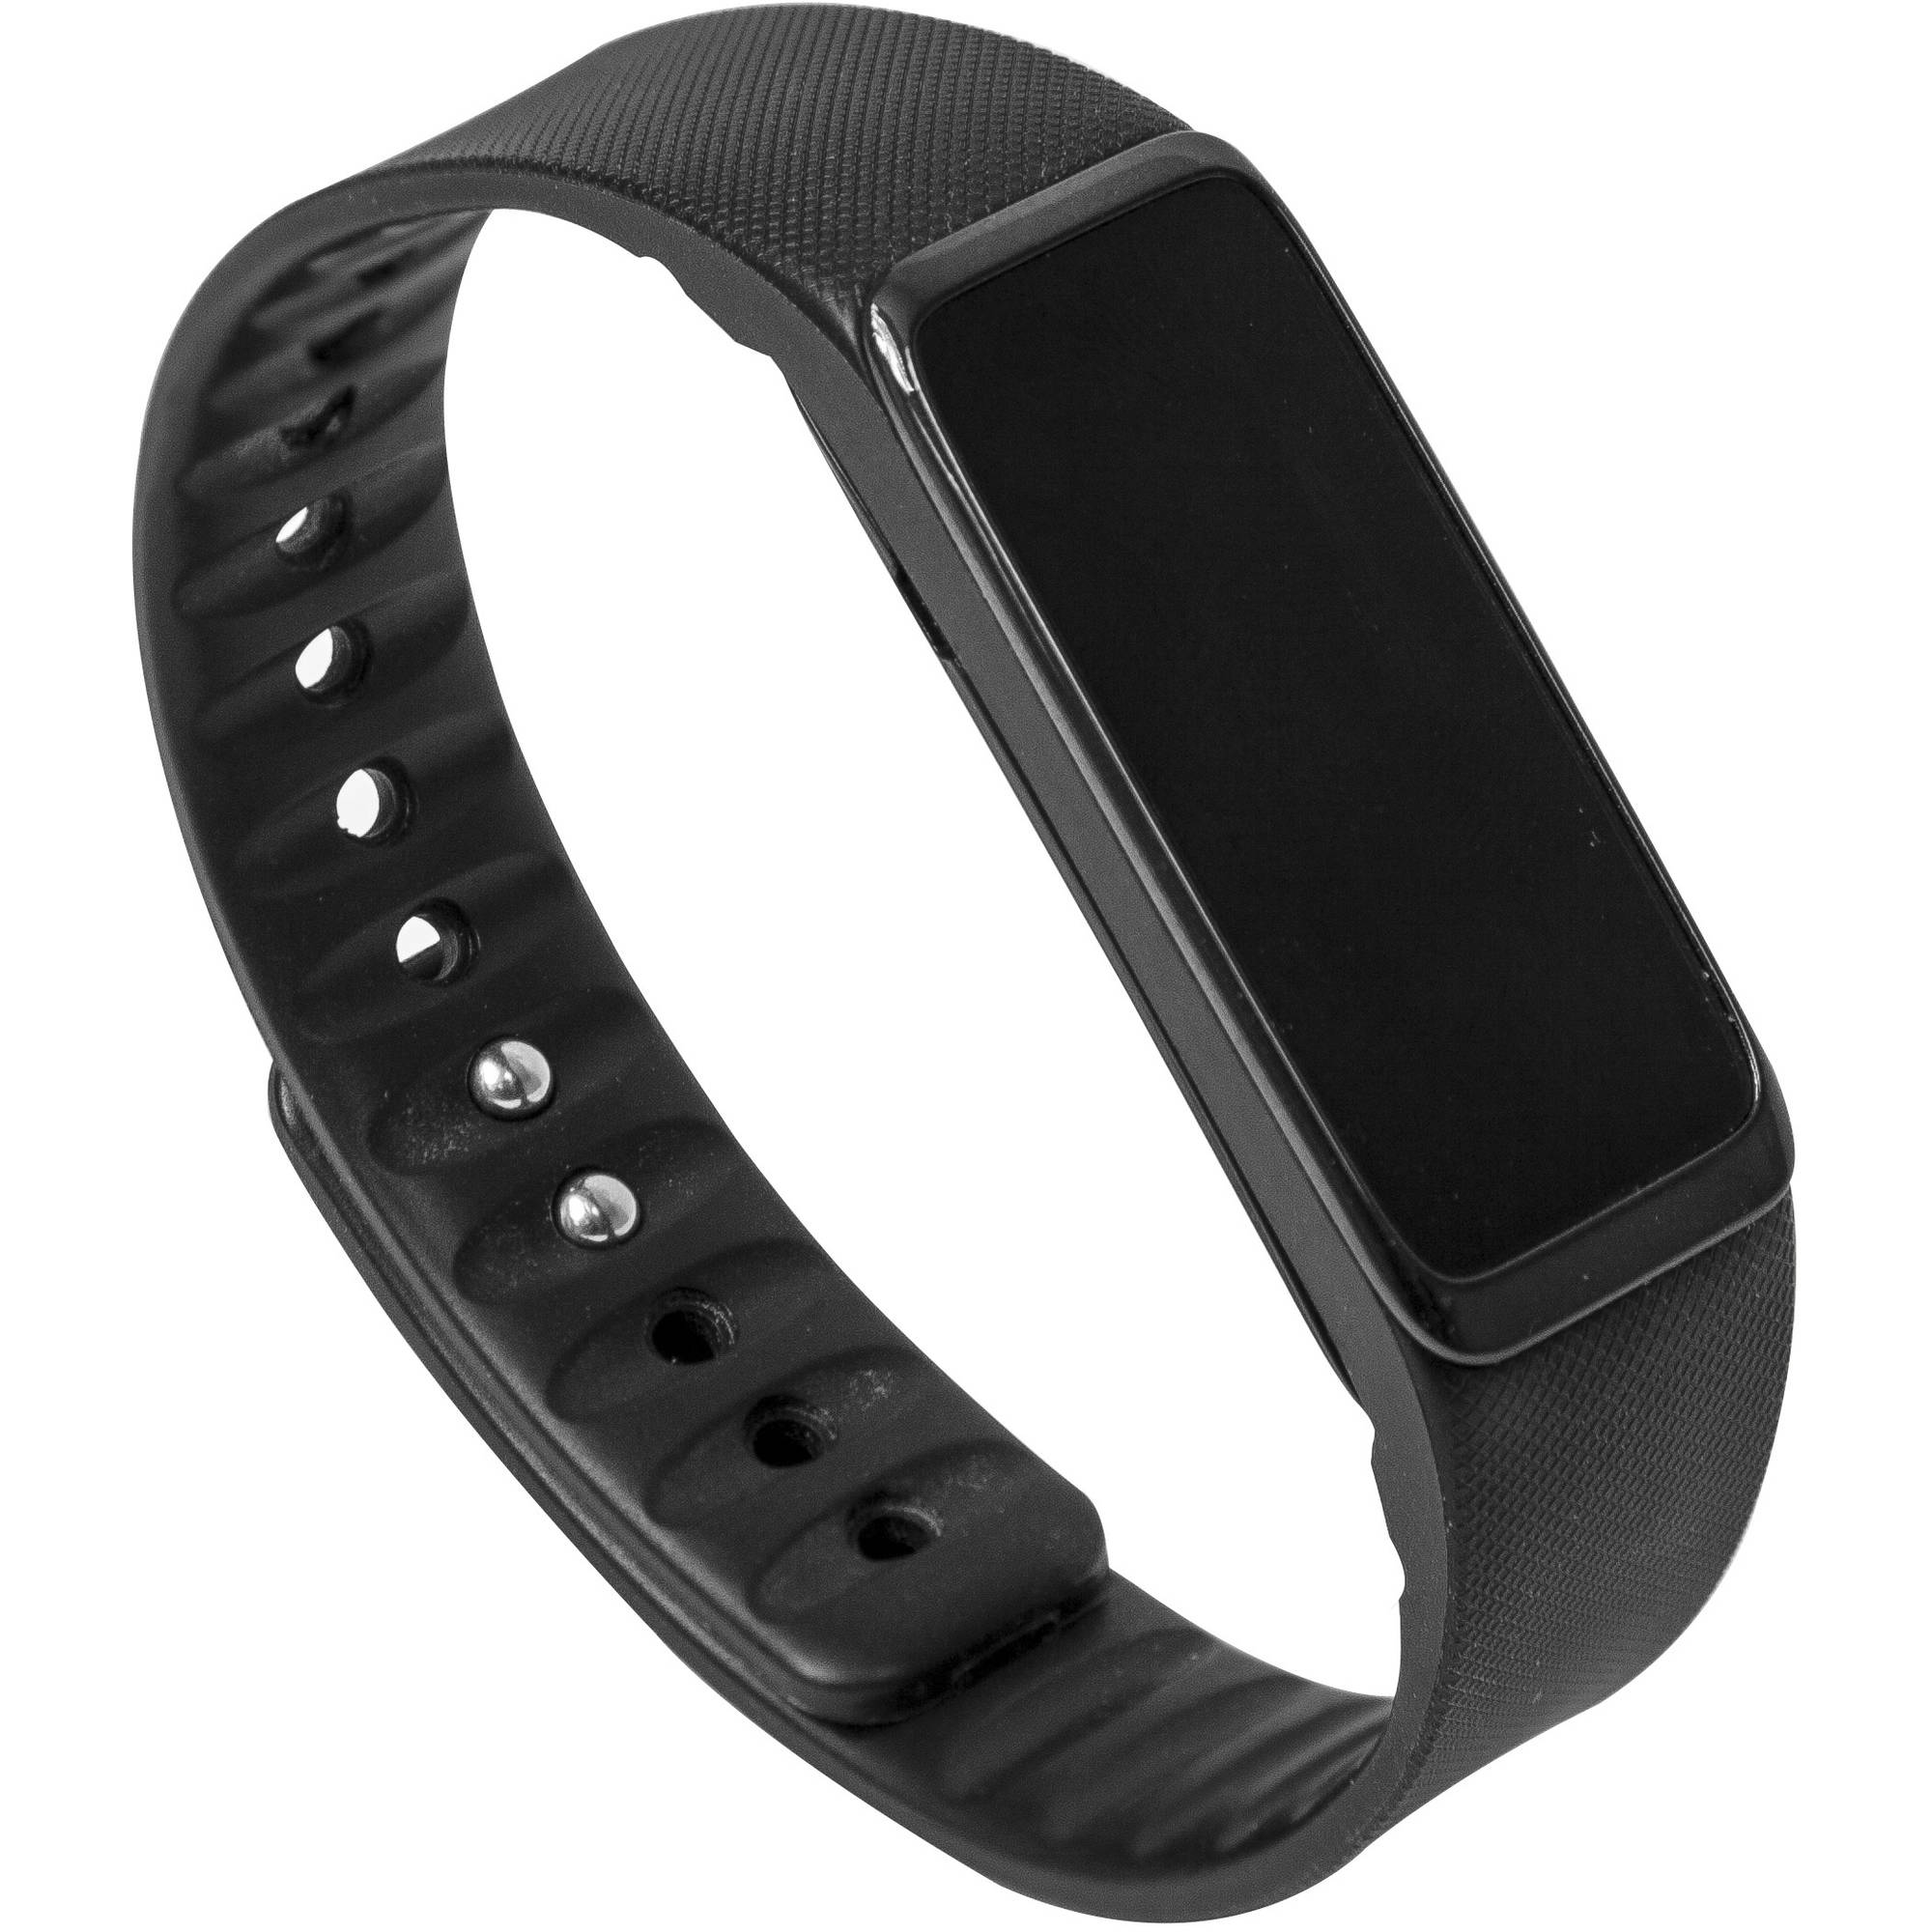 Image of 3Plus Swipe C Smart Watch and Fitness Tracker Combo with Wrist Band